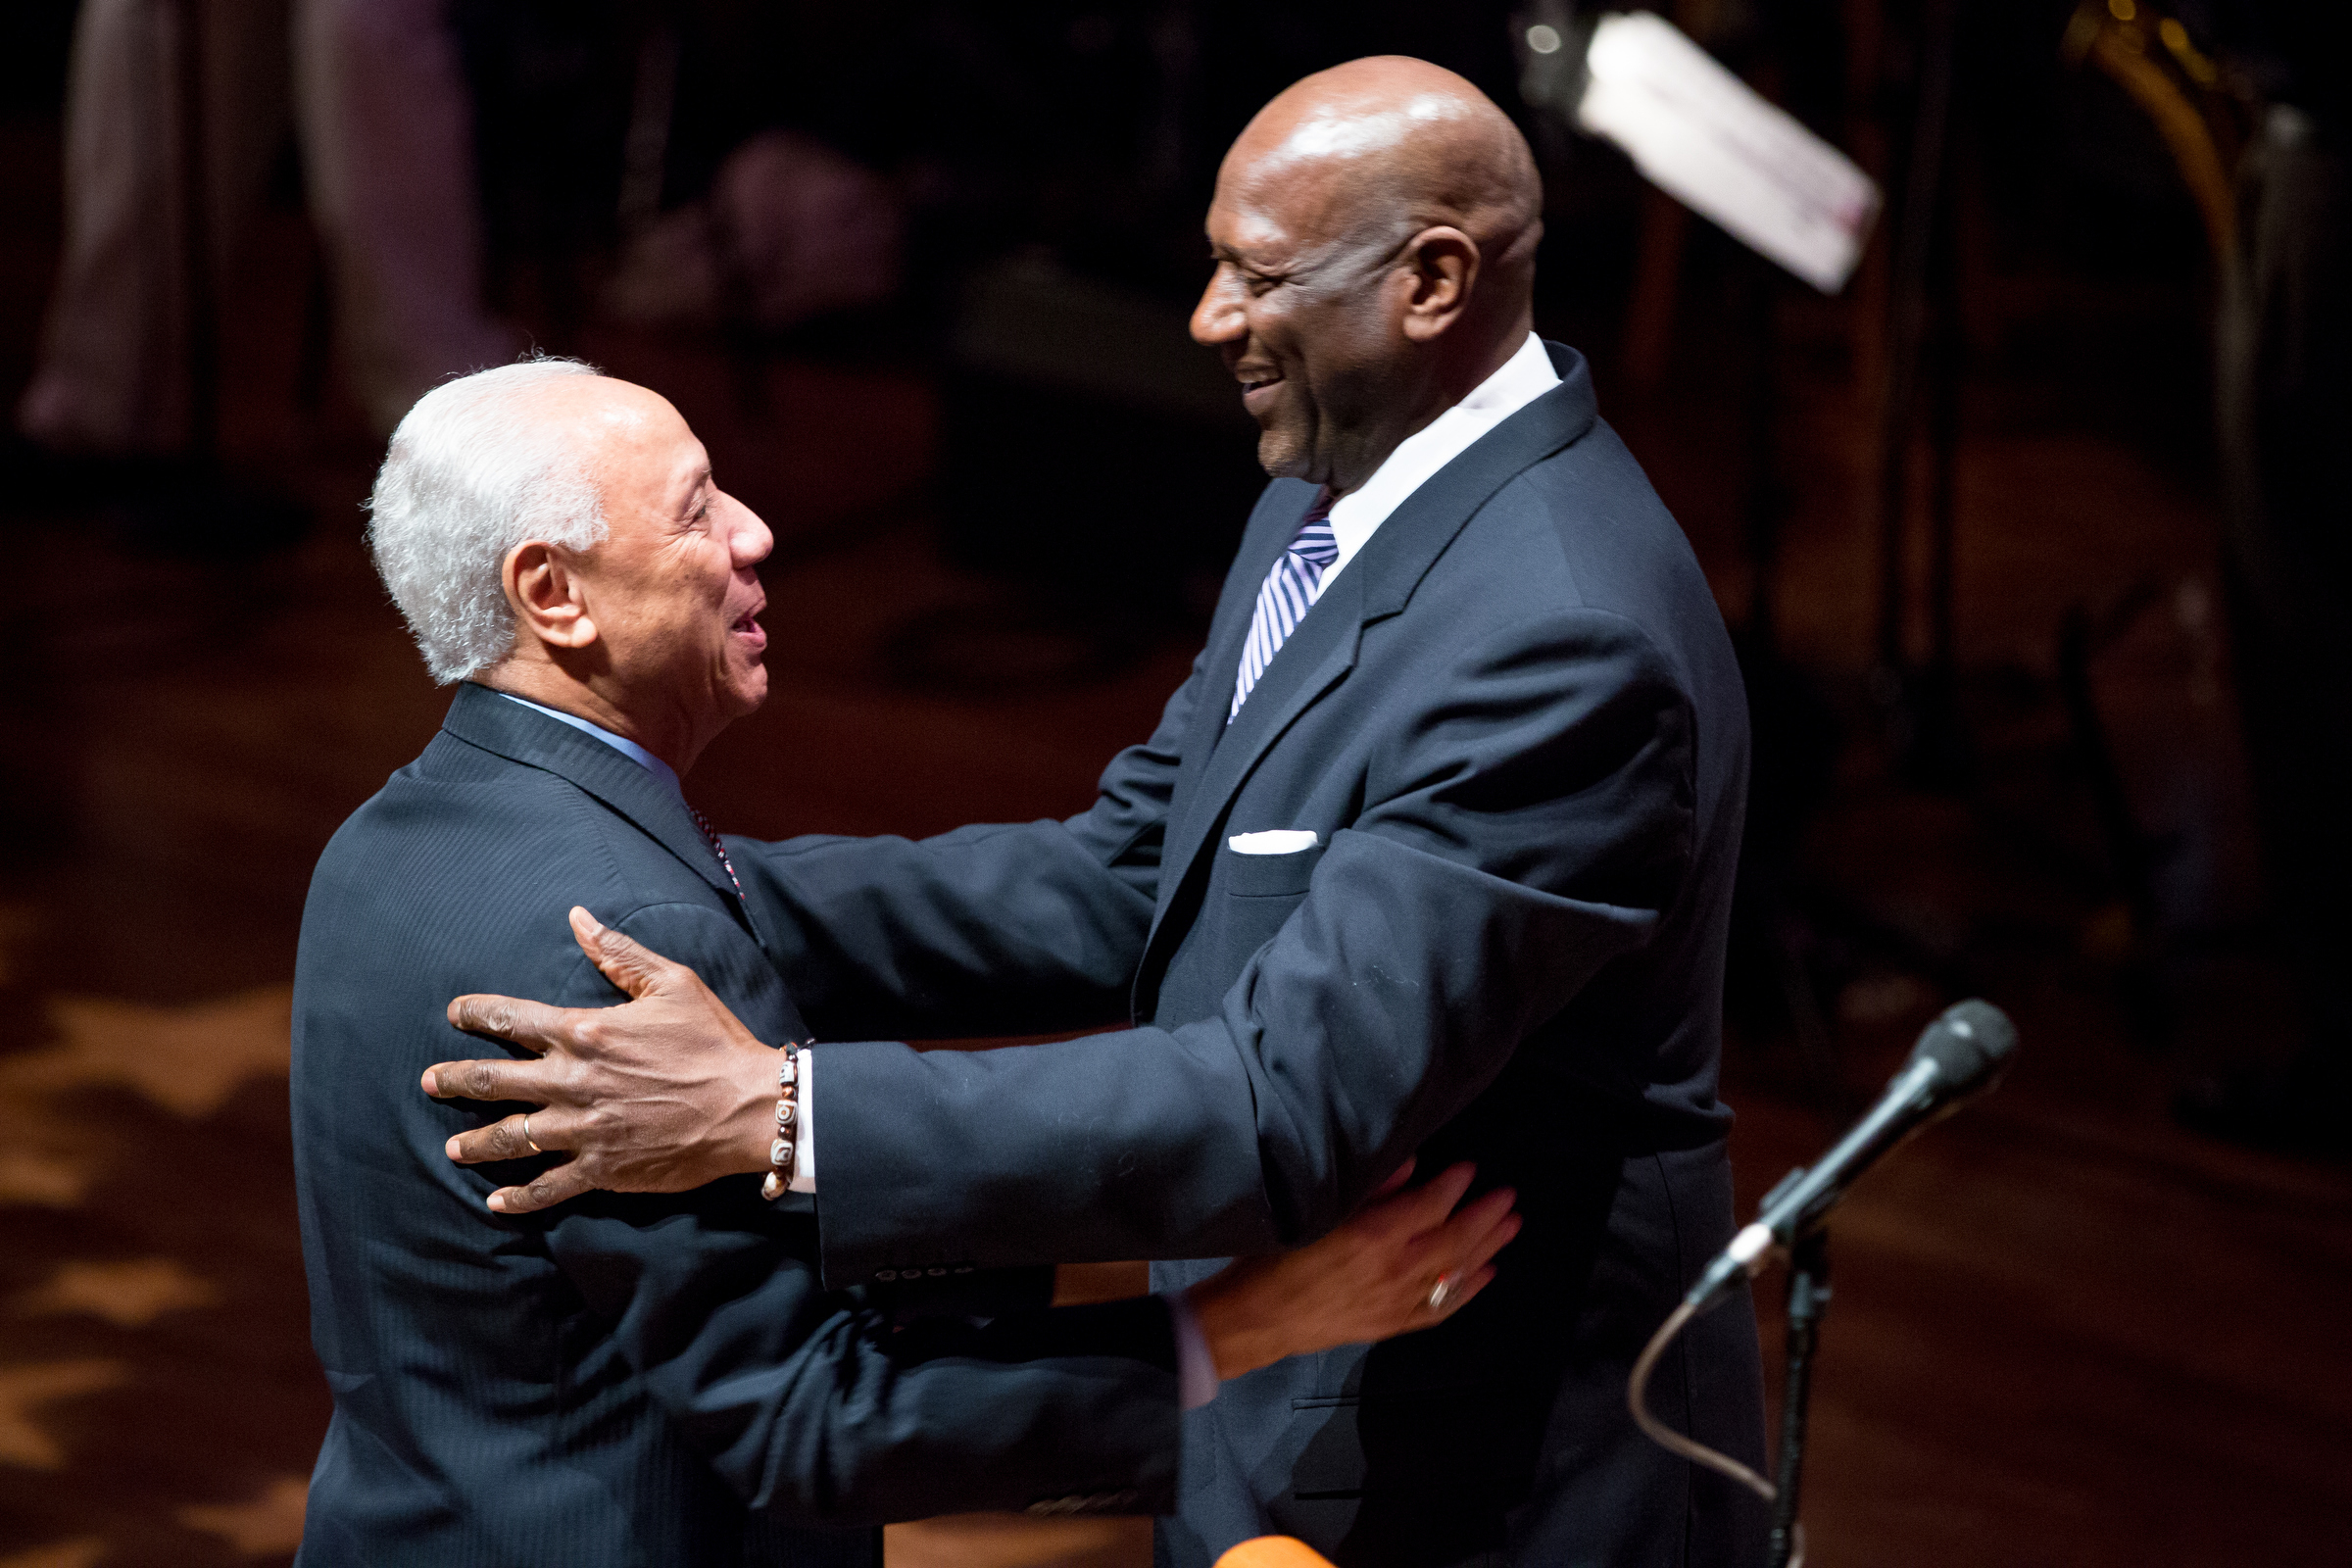 Last year's Sports Star of the Year event at Benaroya Hall brought together Sonics legends Lenny Wilkens and Spencer Haywood. / Scott Eklund, Red Box Pictures